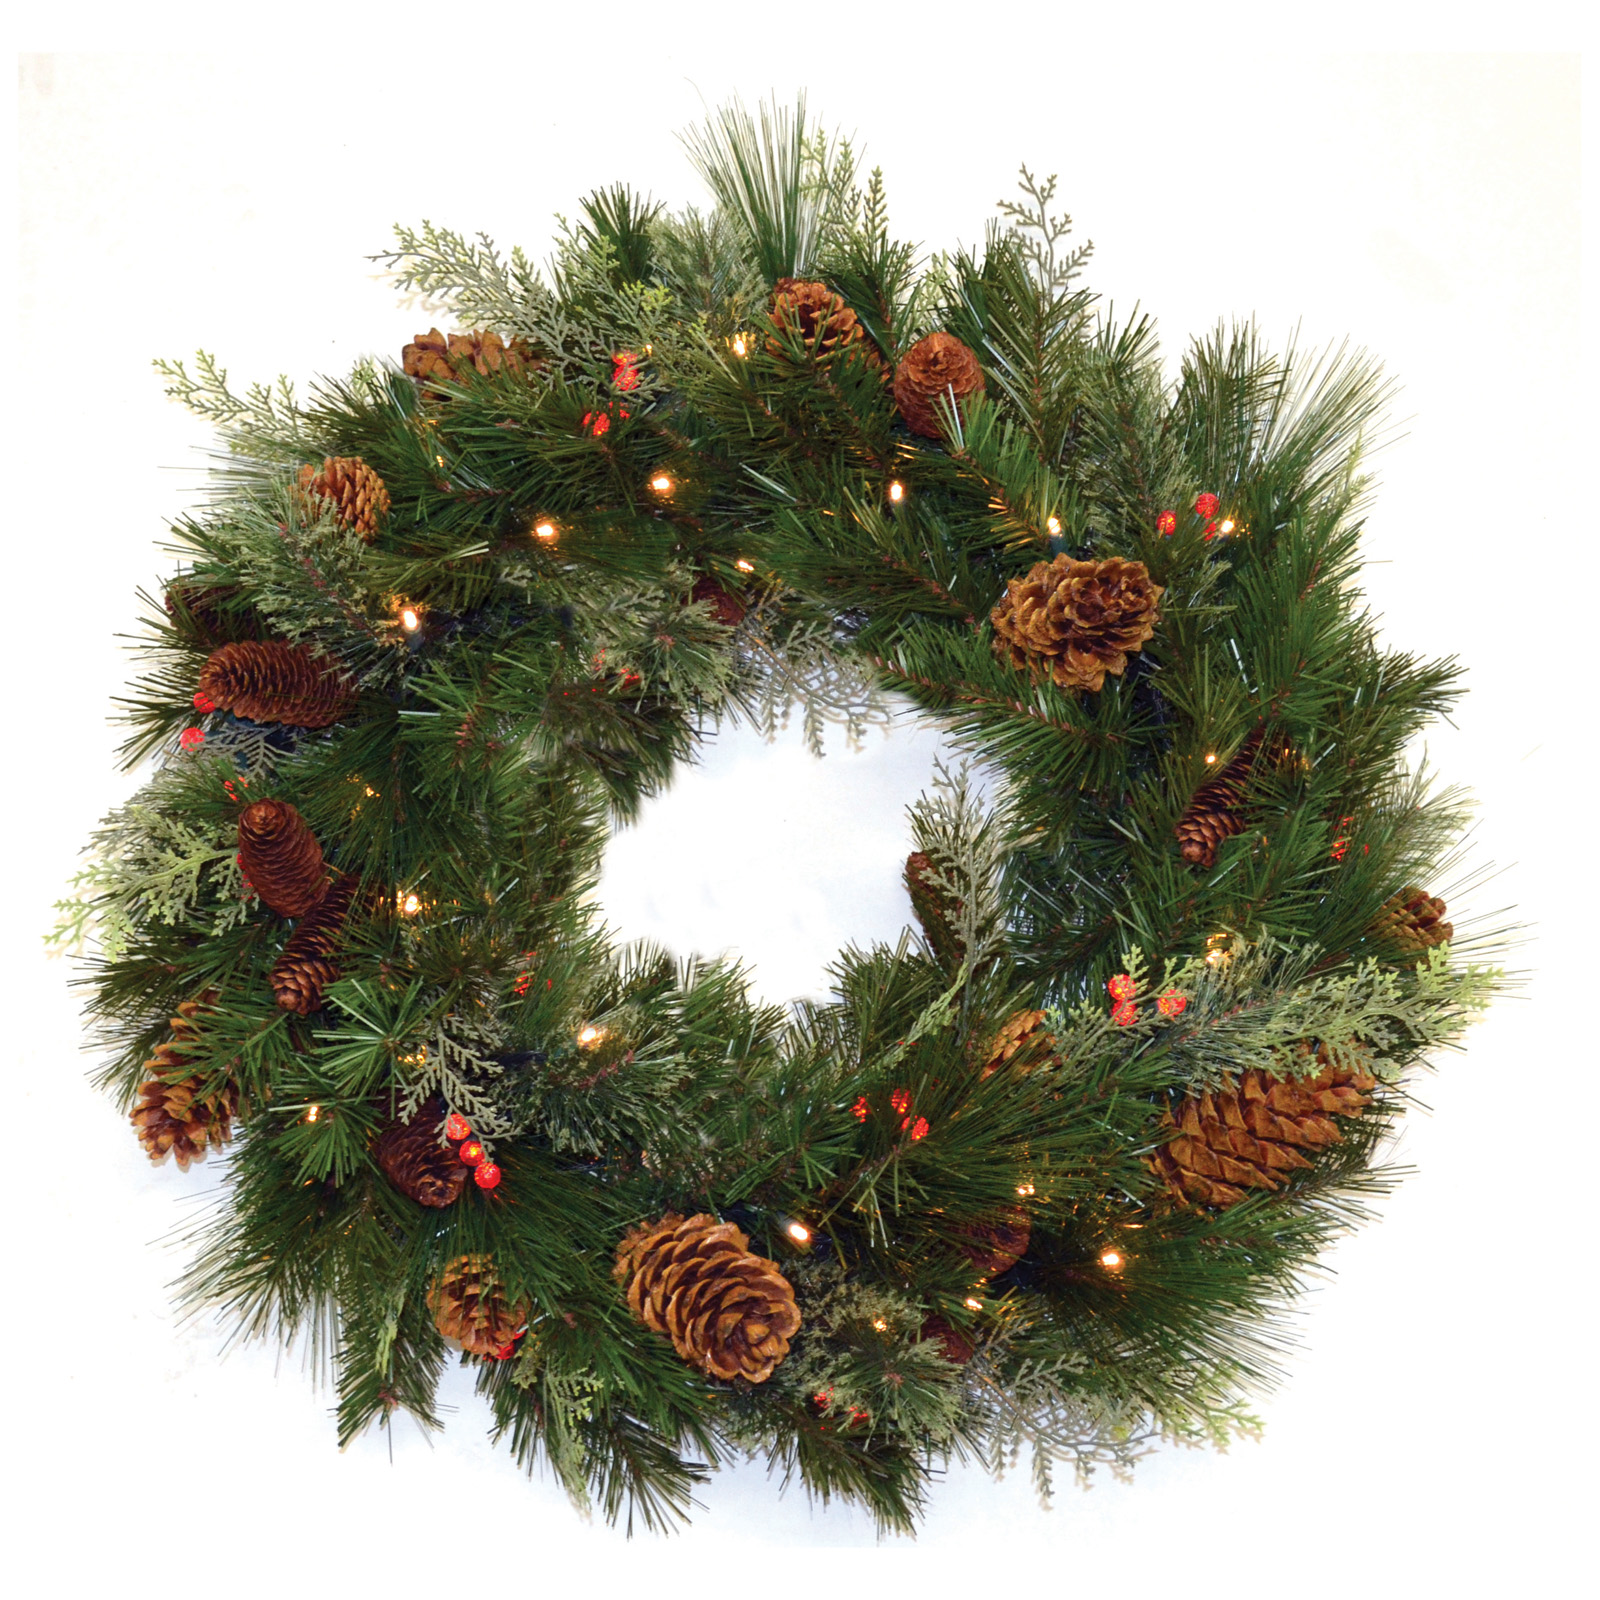 30 In. White Pine Pre Lit LED Wreath   Battery Operated